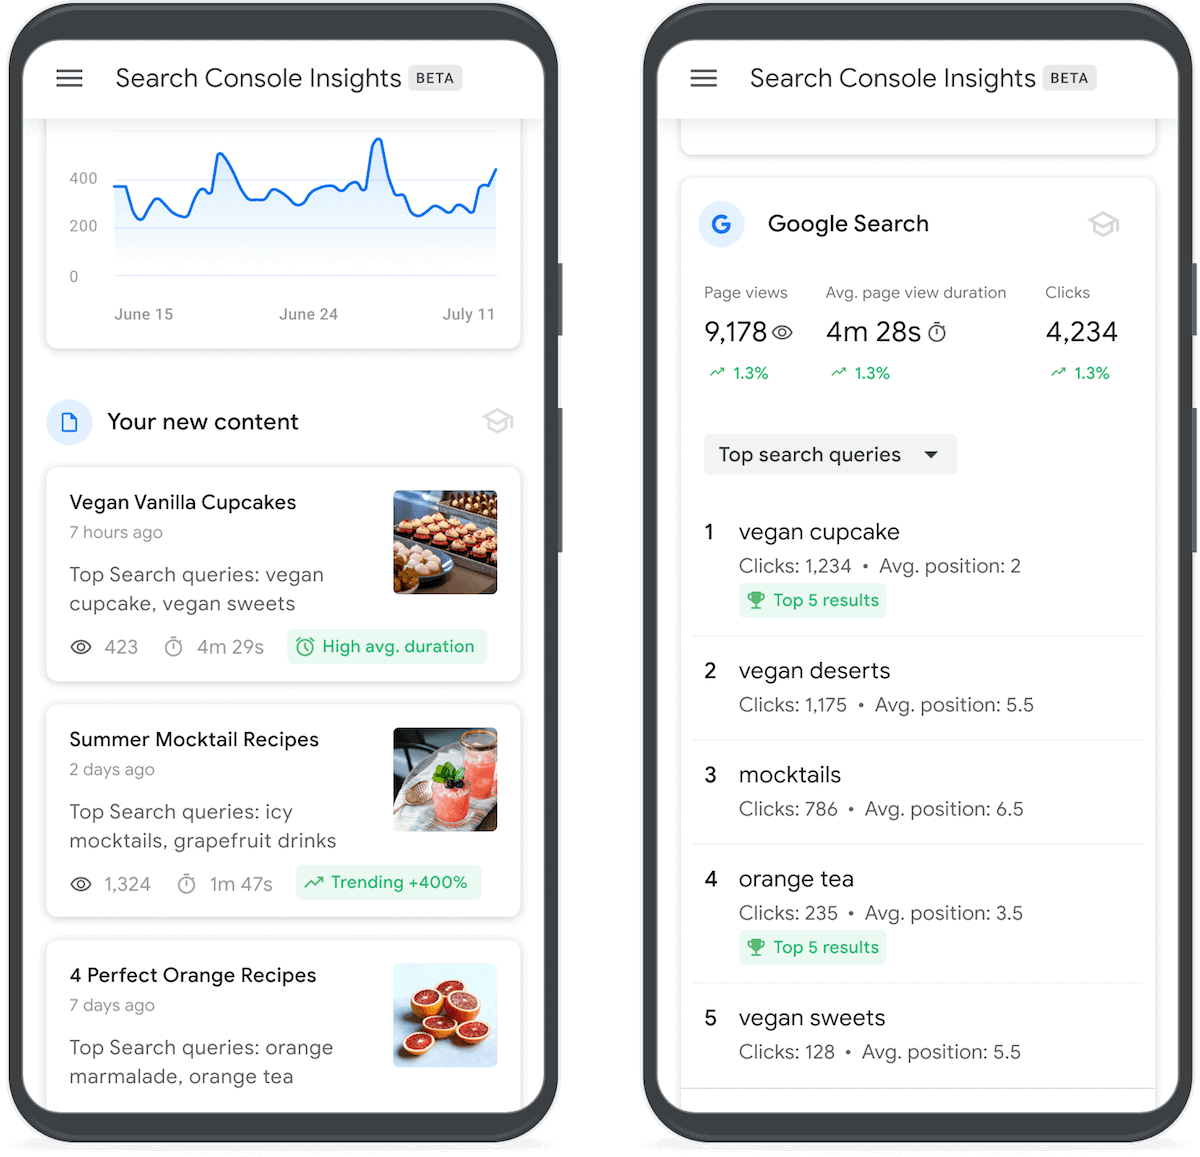 Google's Search Console Insights